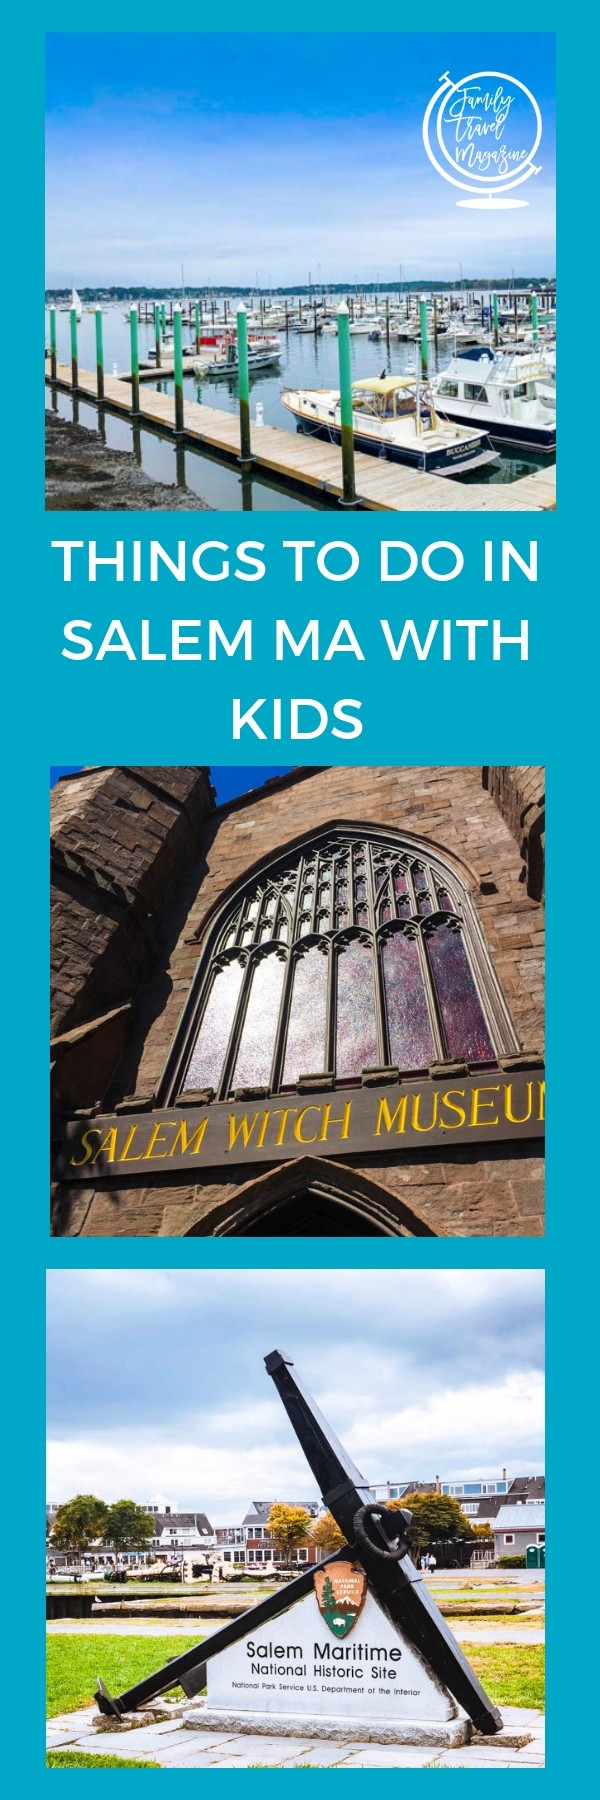 Things to do in Salem MA with kids, including Halloween activities in October, summer activities, historical attractions, and Salem Witch Trial attractions.